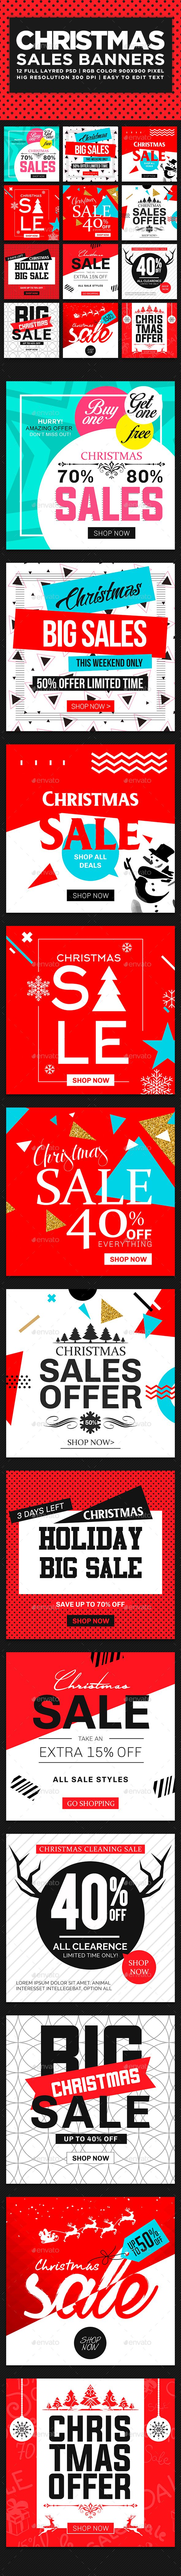 Christmas Sales Banners Ads Set  Design template - Banners & Ads Web Elements Design Template PSD. Download here: https://graphicriver.net/item/christmas-sales-banners-set/18959193?ref=yinkira